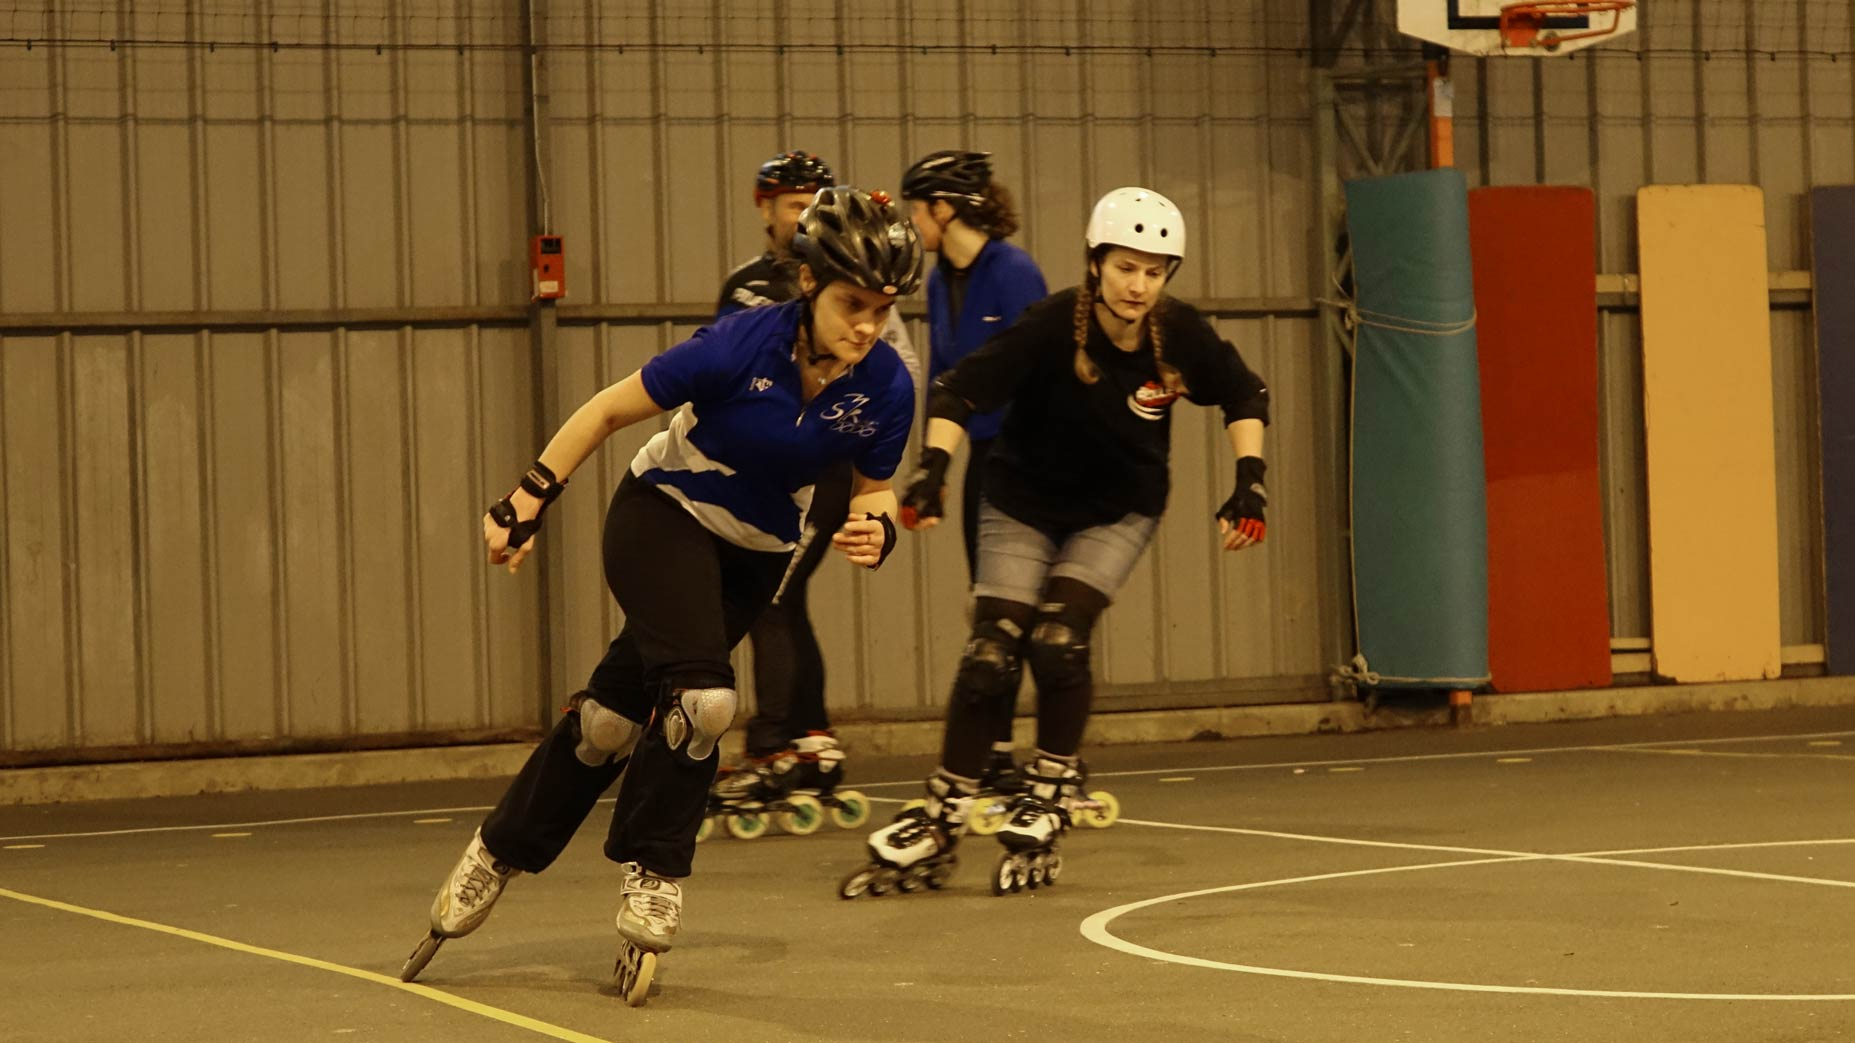 Cours roller vitesse adultes